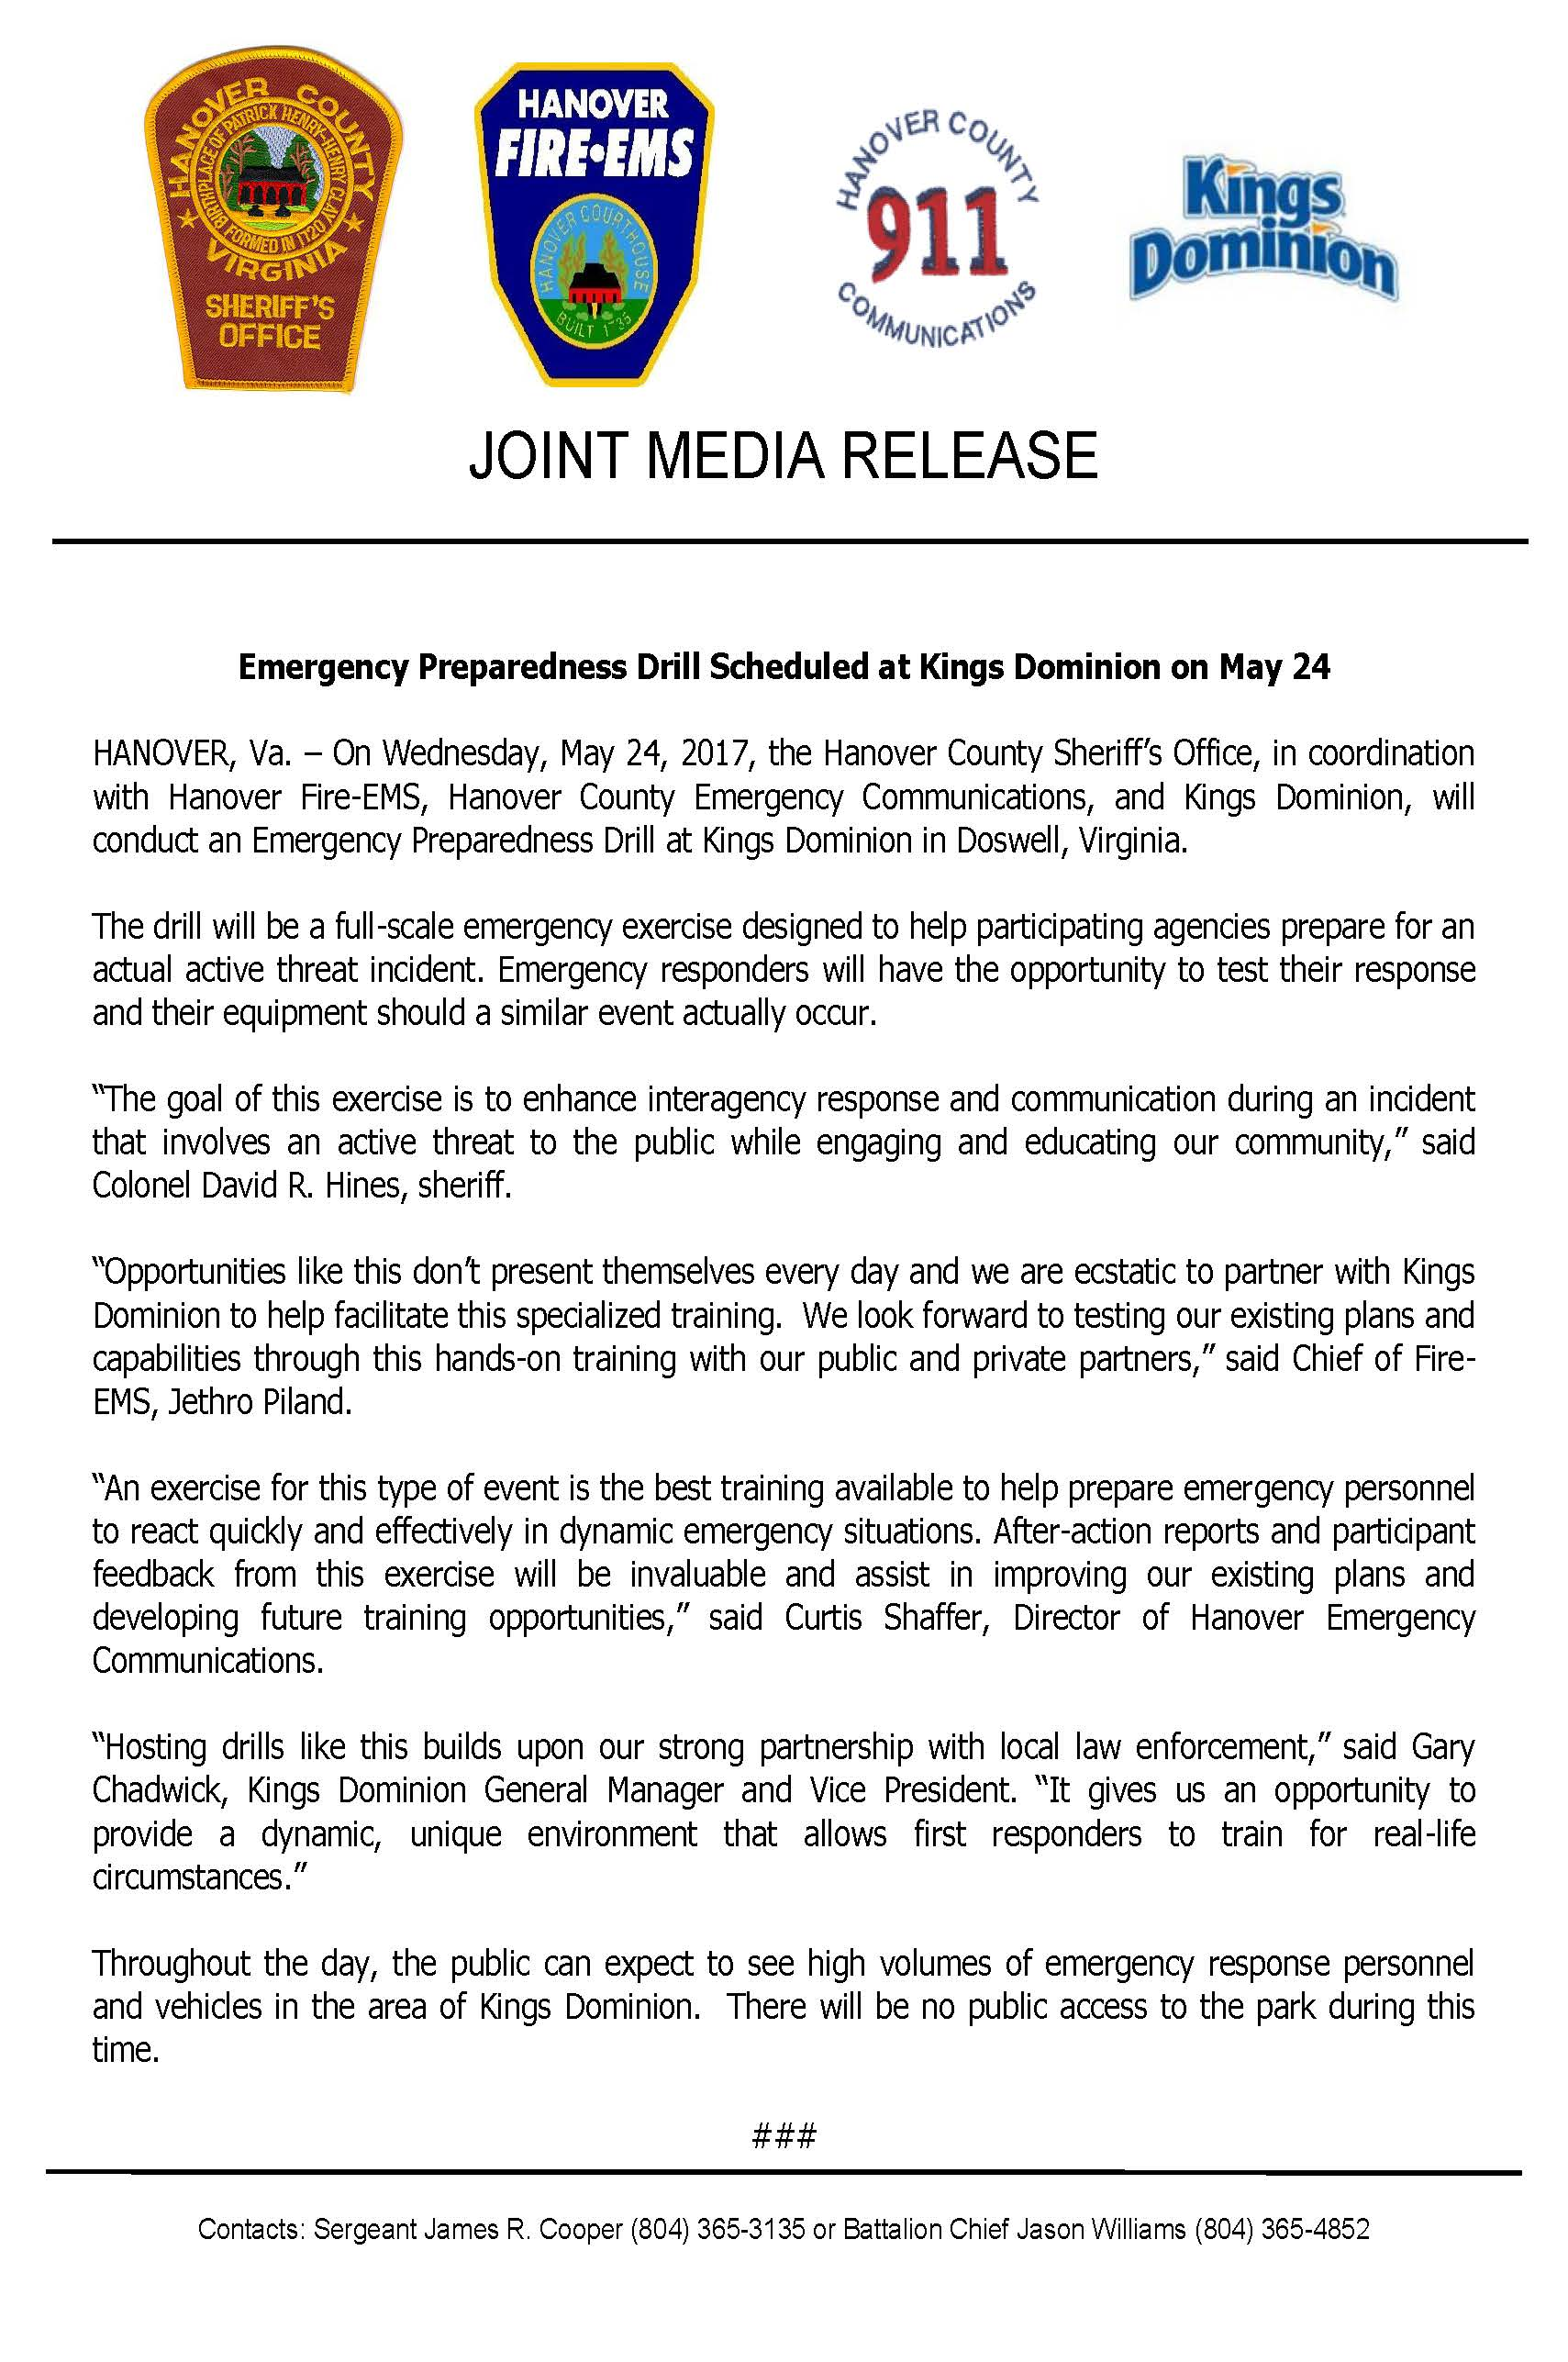 Joint Release- Emergency Preparedness Drill at Kings Dominion- May 24, 2017